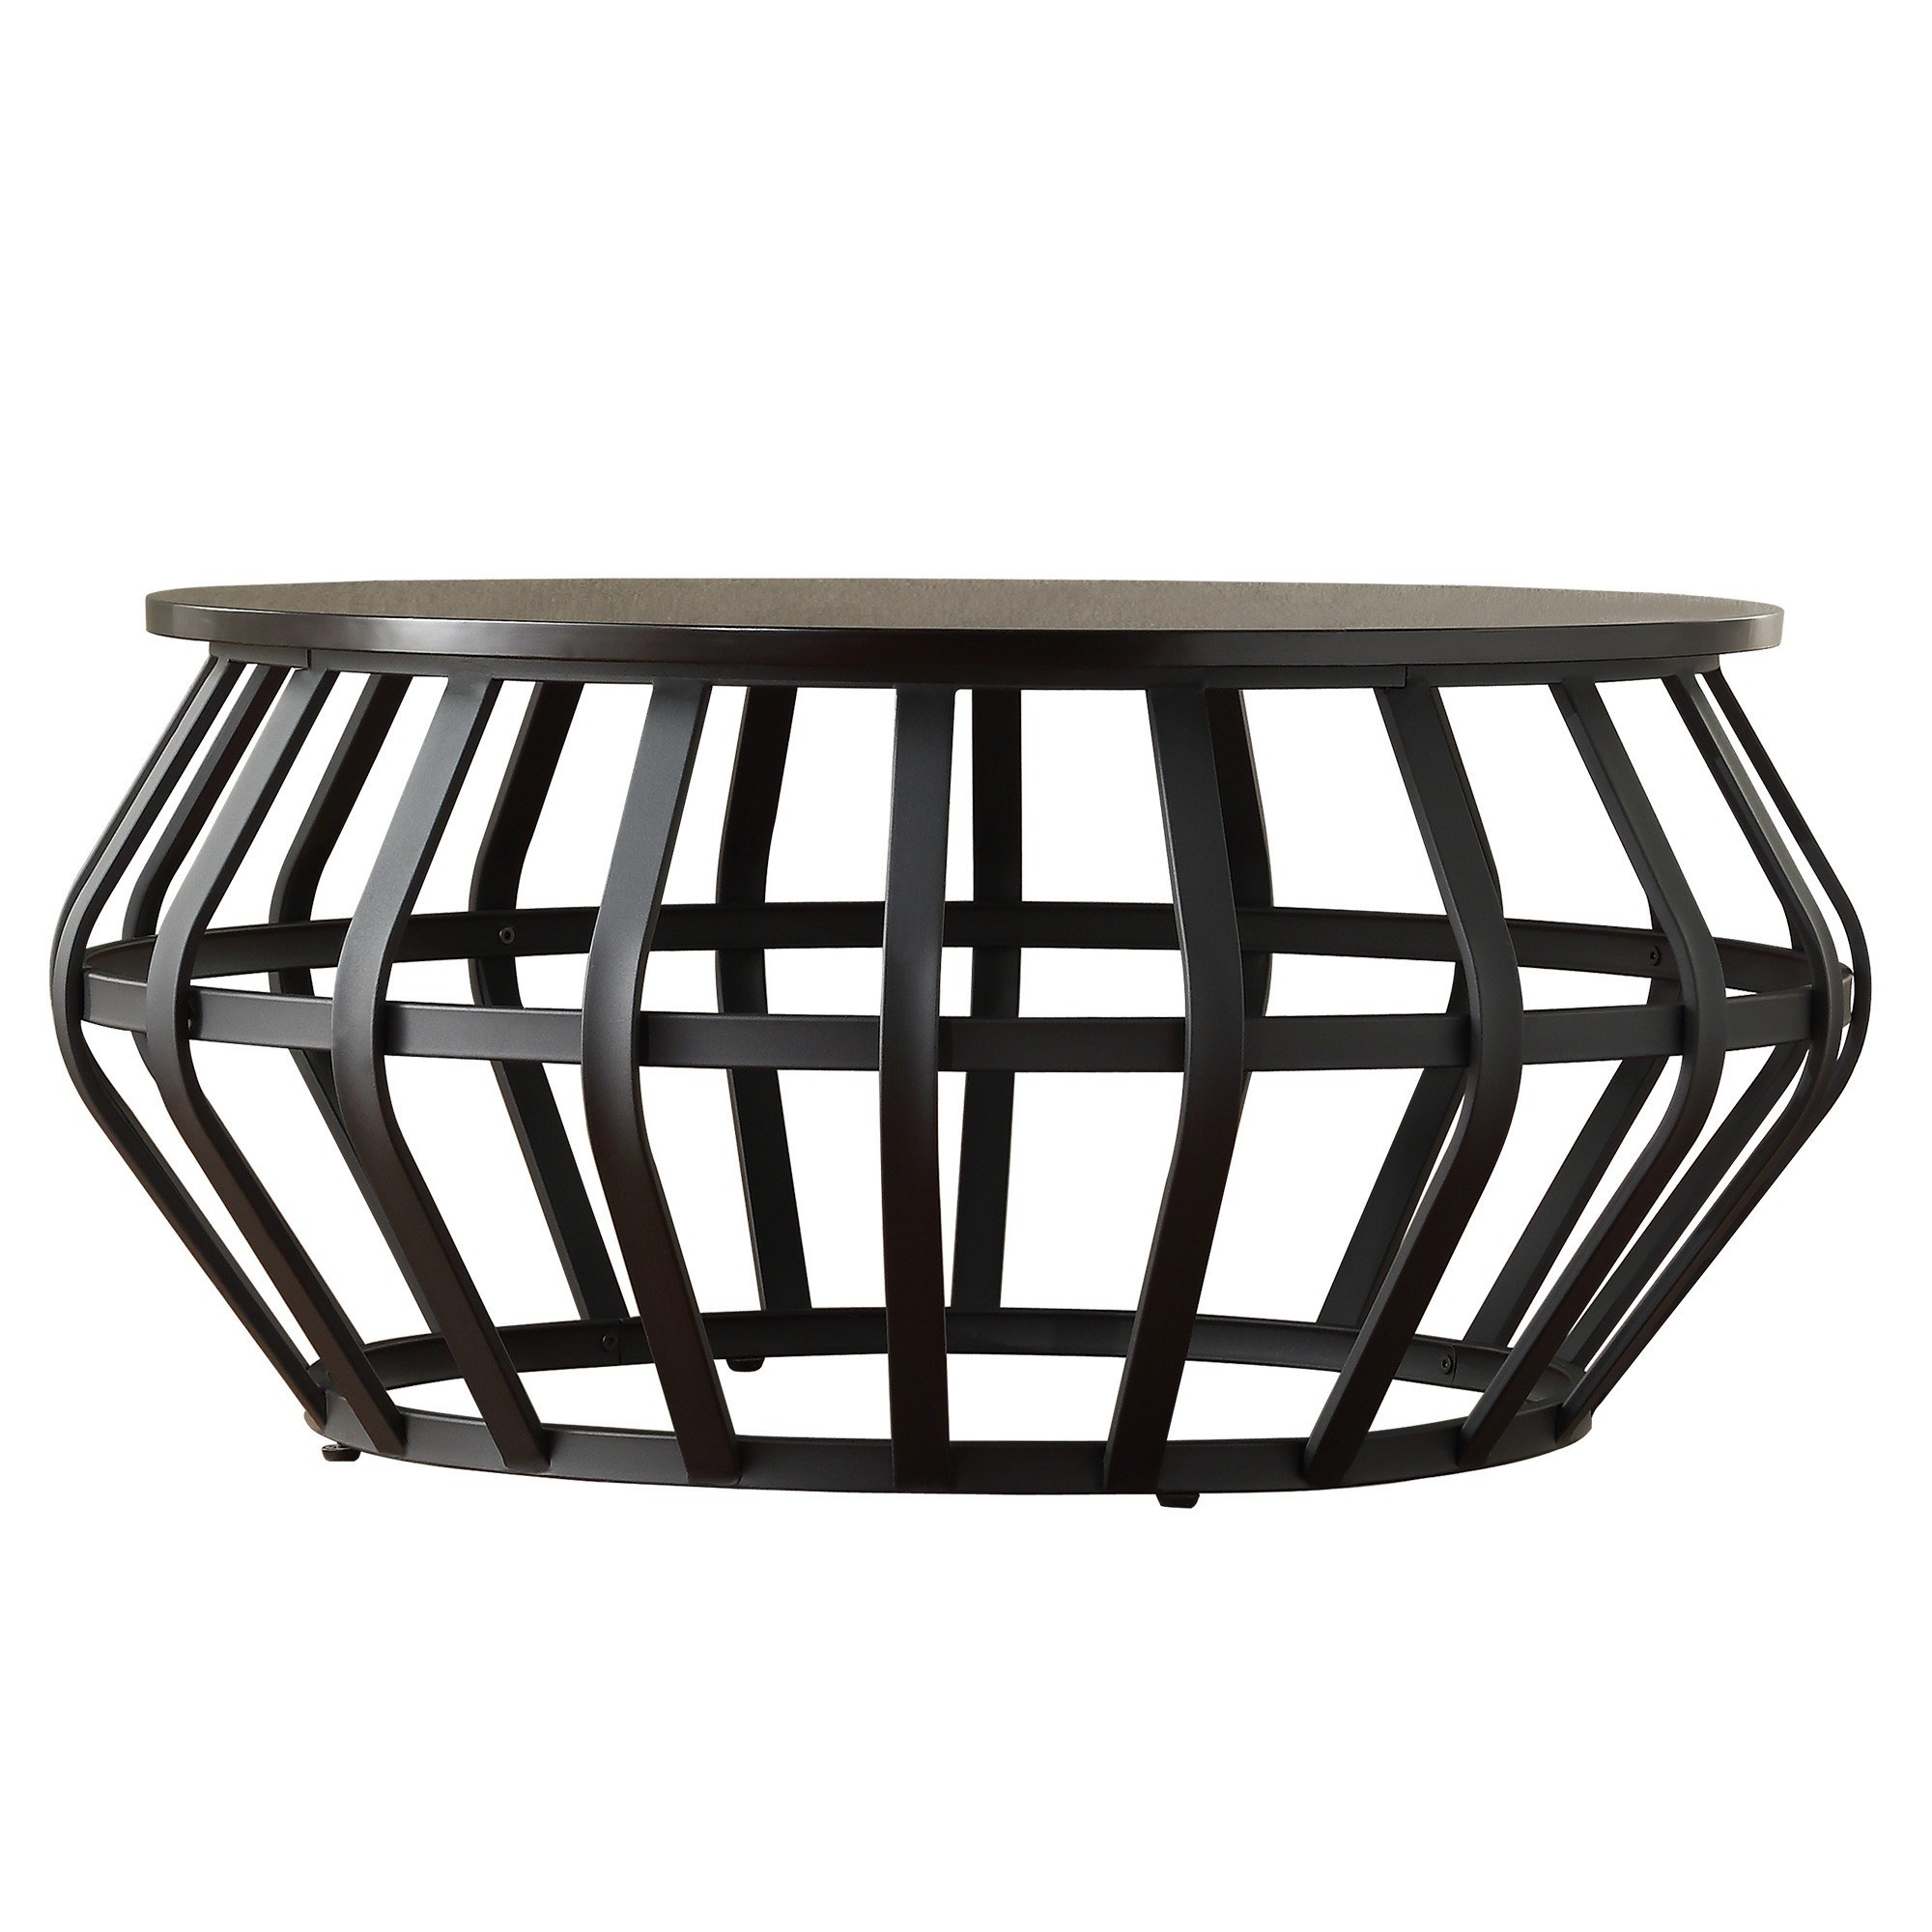 devon metal frame round cage slate accent coffee table tribecca home storage drum inspire classic free shipping today dining napkins homegoods console weber grill stand modern